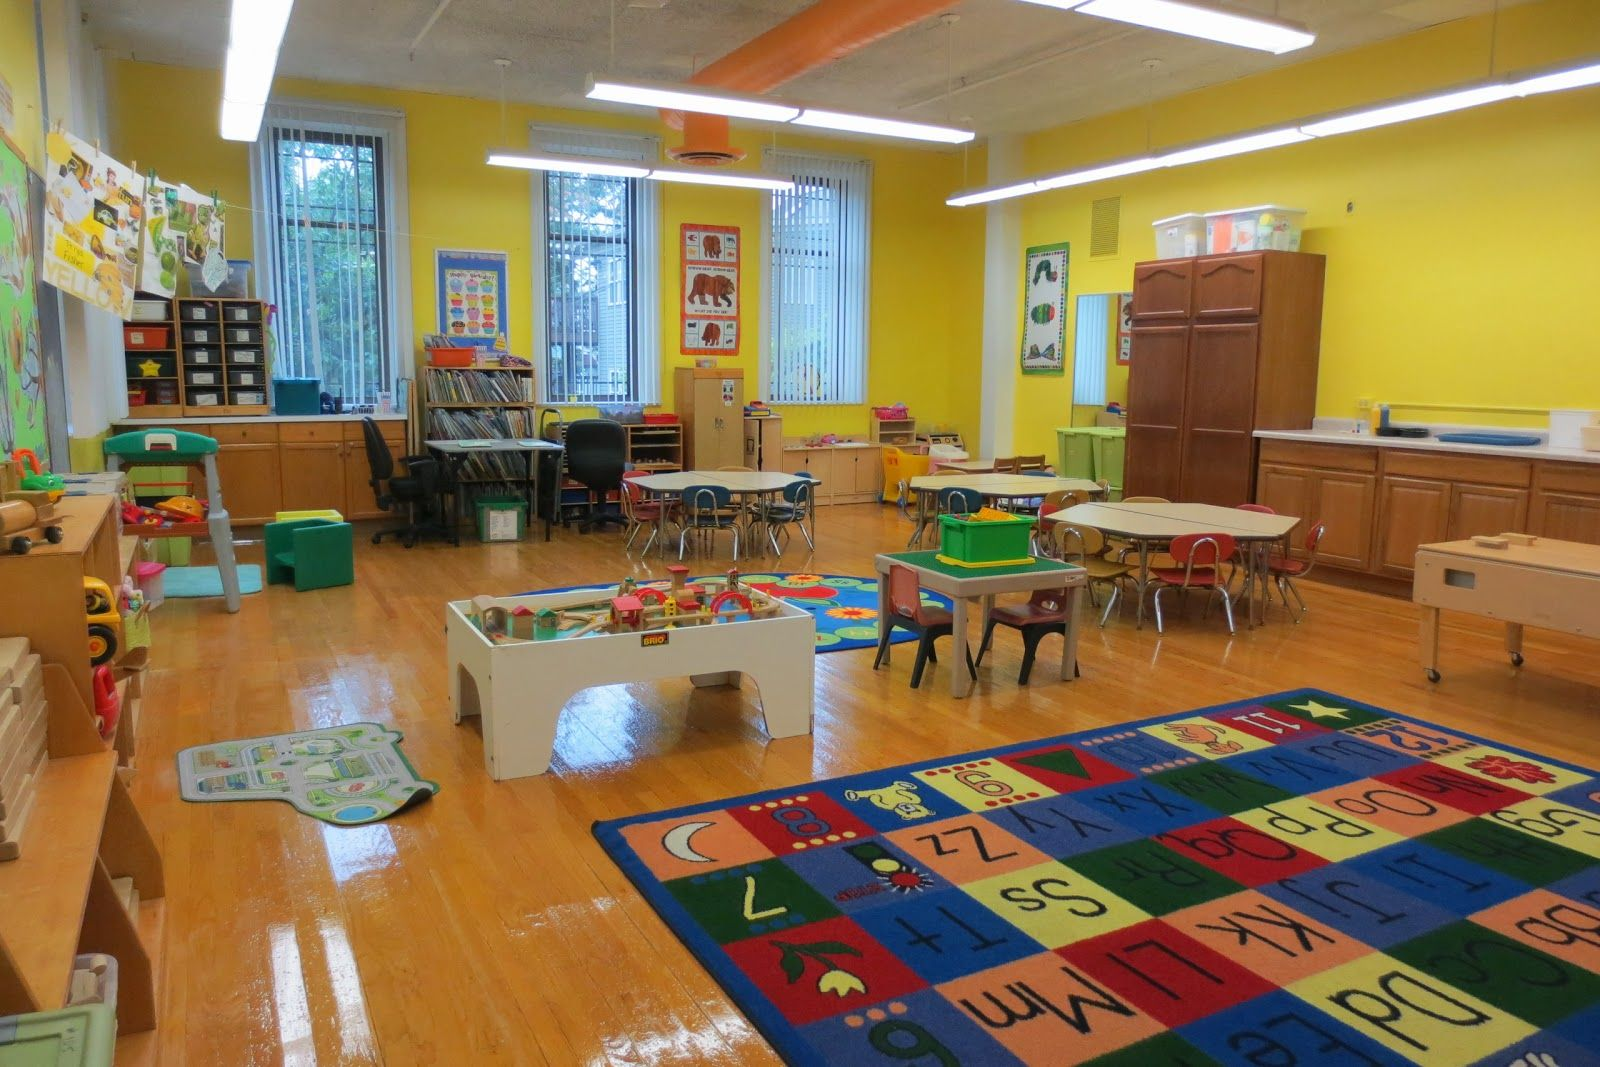 Image Result For Images Of Preschools Roll Call Pinterest